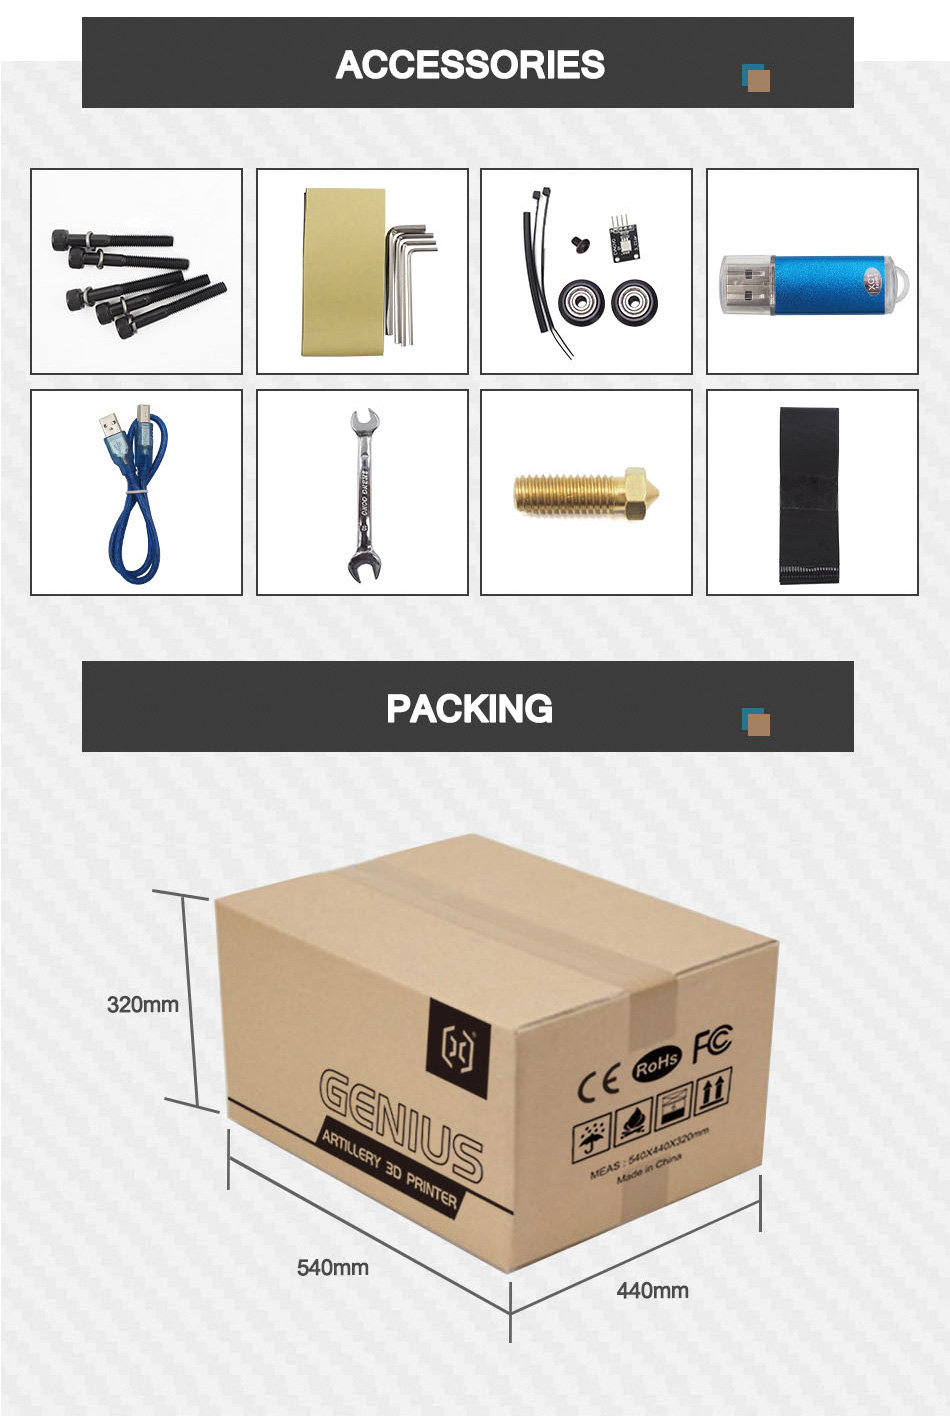 Artillery Genius Accessories and Packing